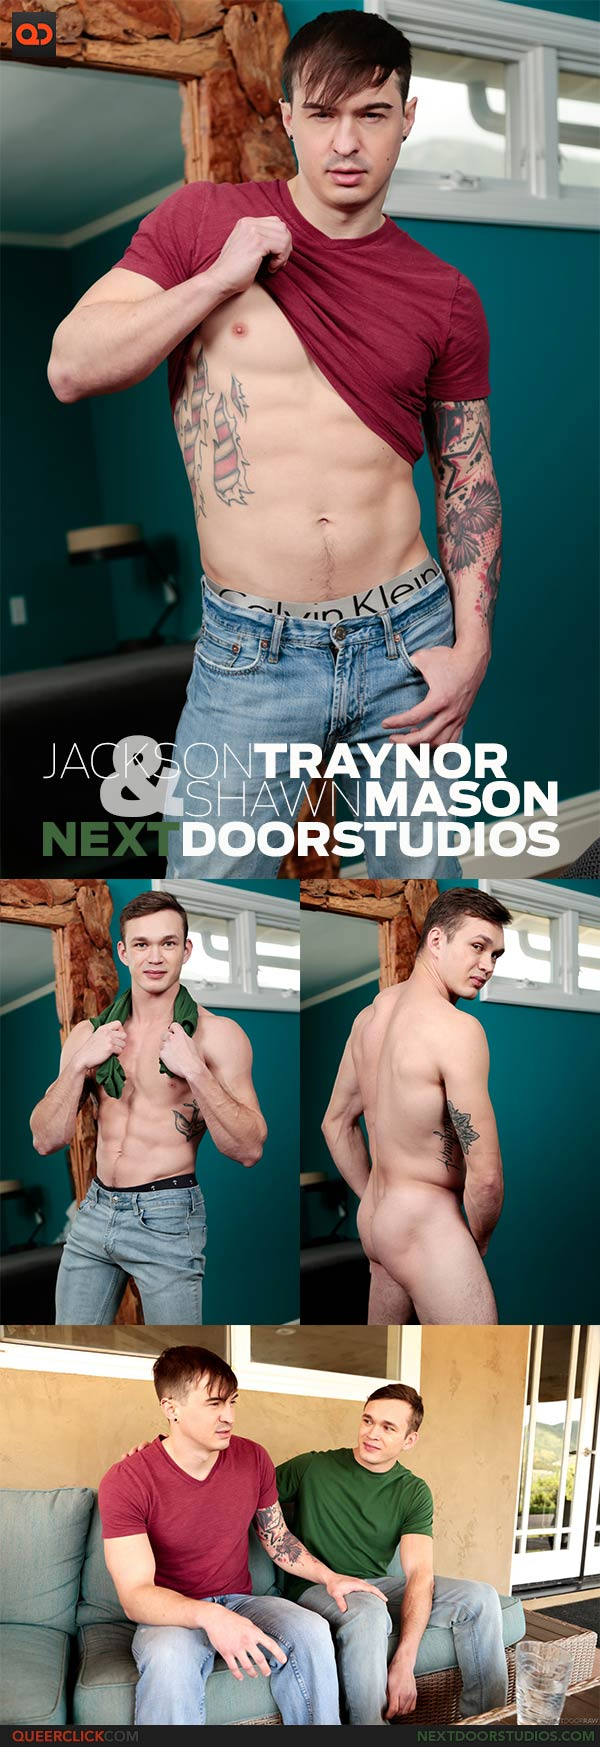 Next Door Studios:  Jackson Traynor and Shawn Mason